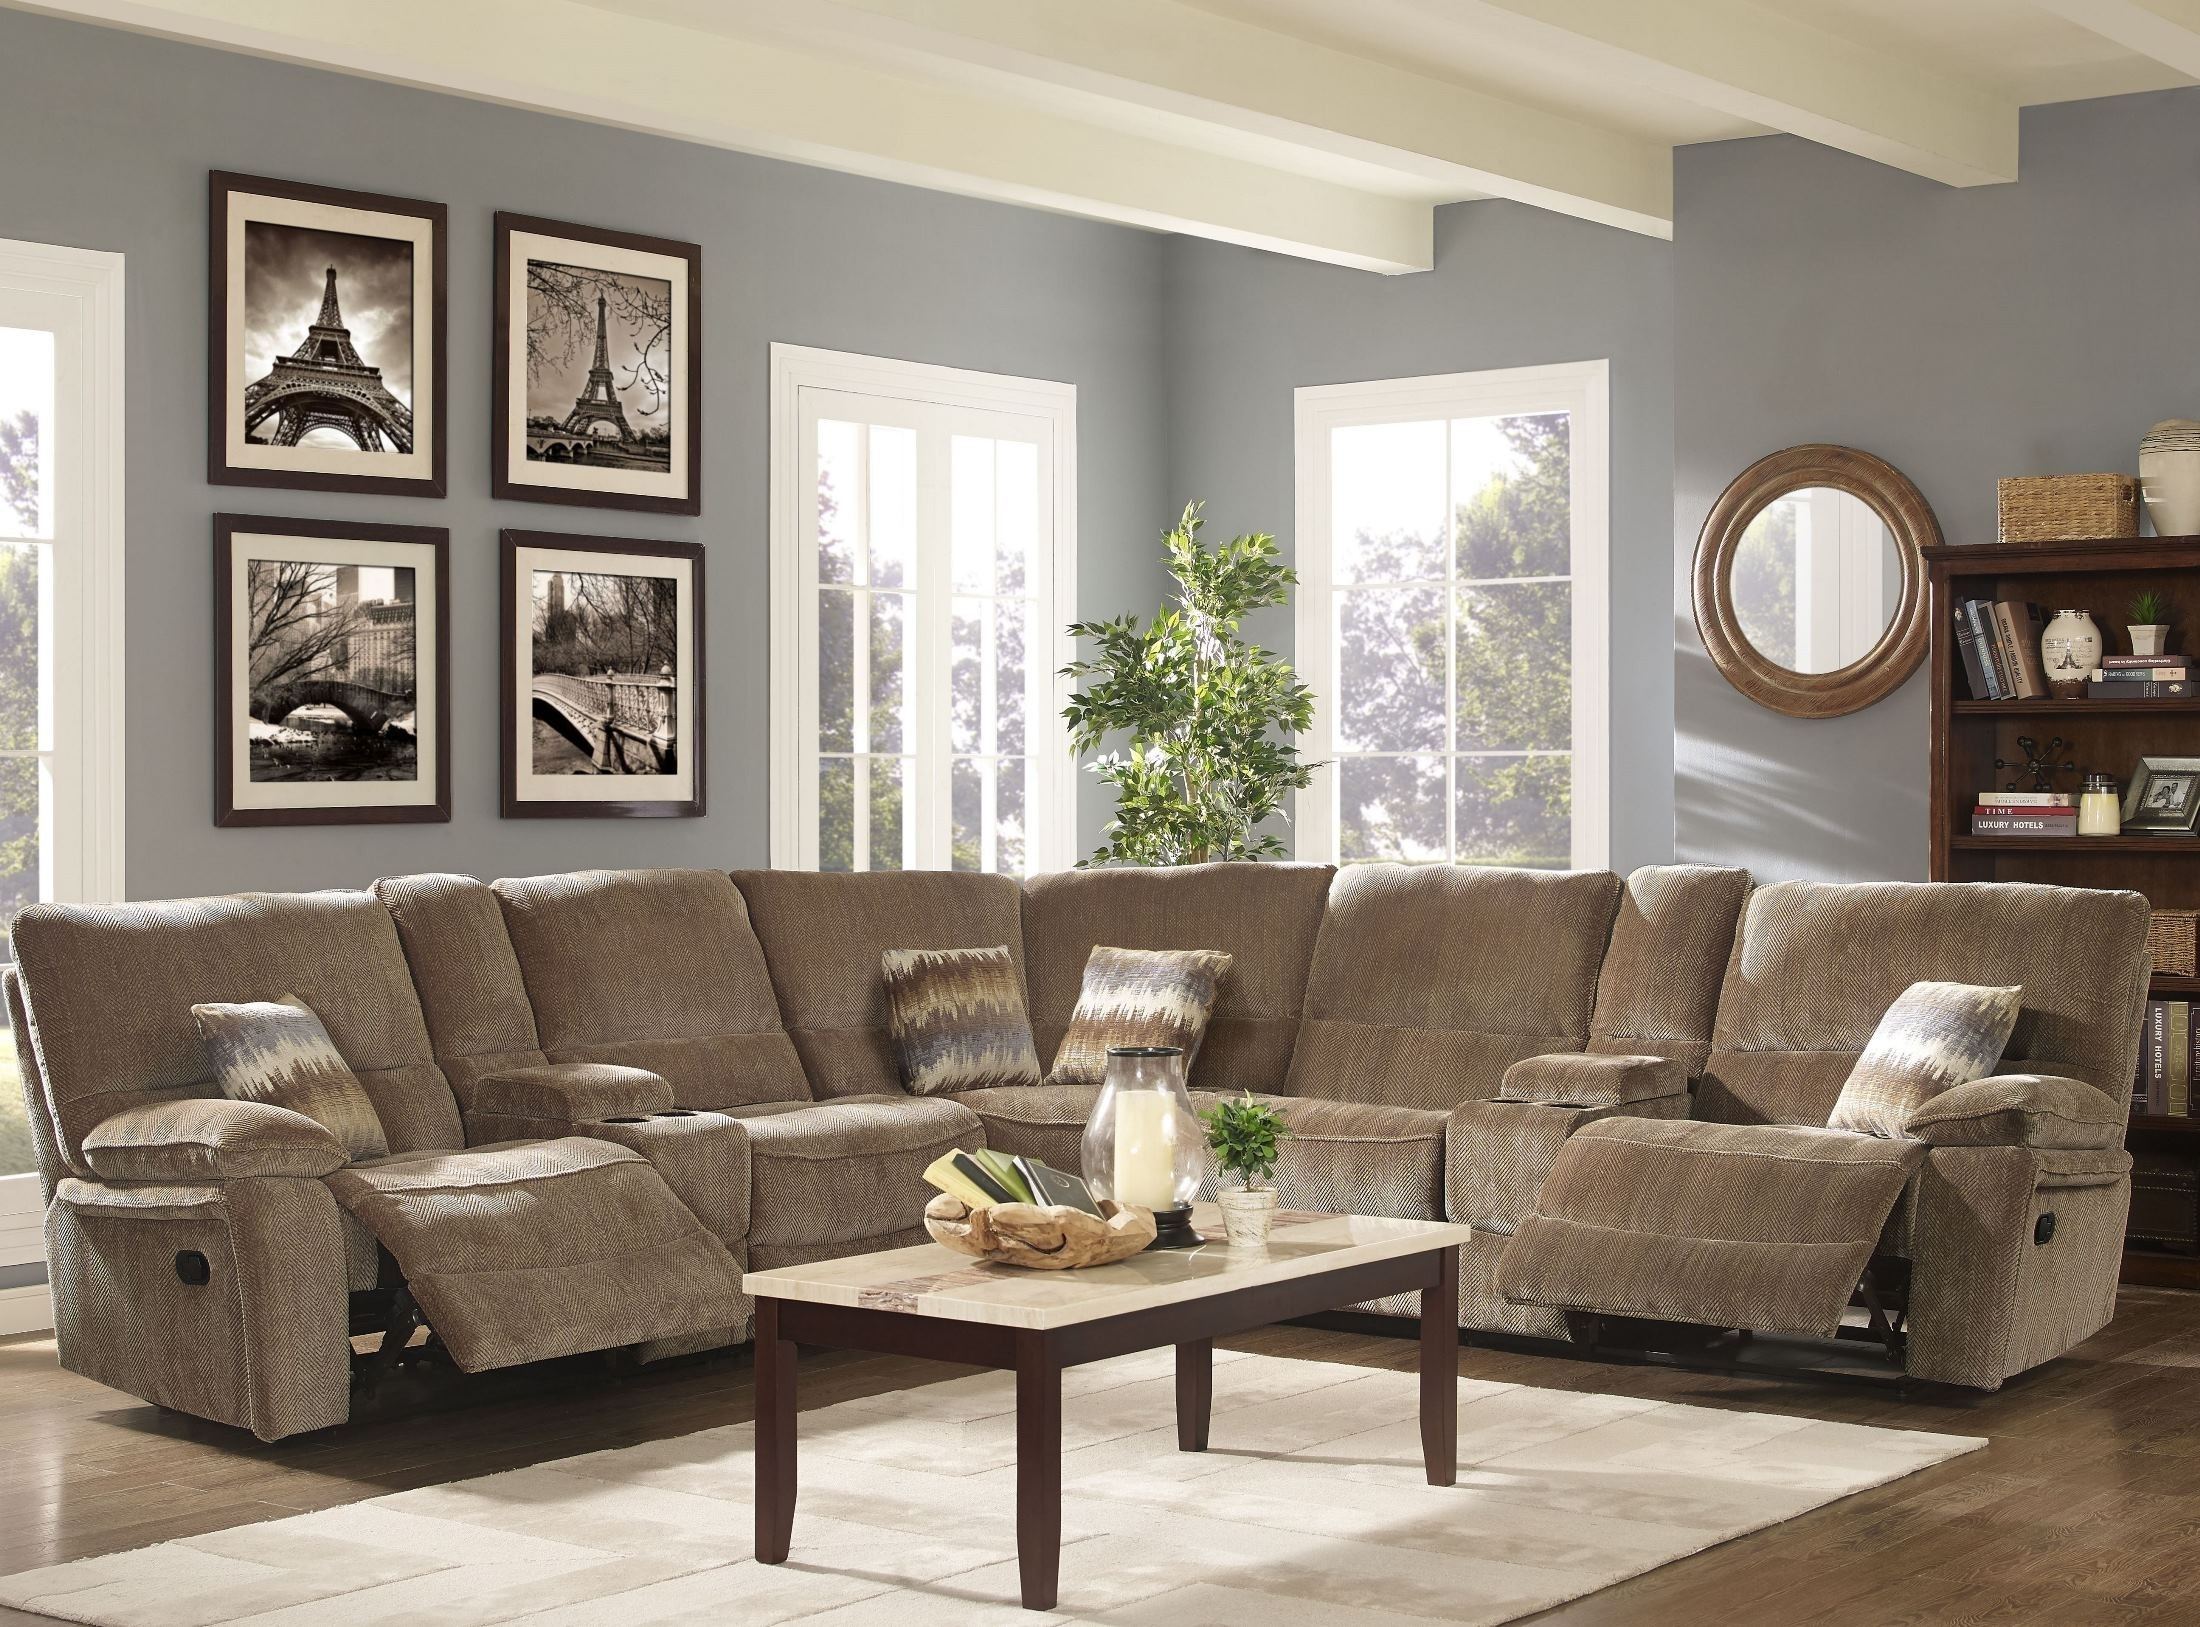 Ranger Bravo Sandalwood Power Reclining Sectional From New Classic inside Turdur 2 Piece Sectionals With Raf Loveseat (Image 26 of 30)